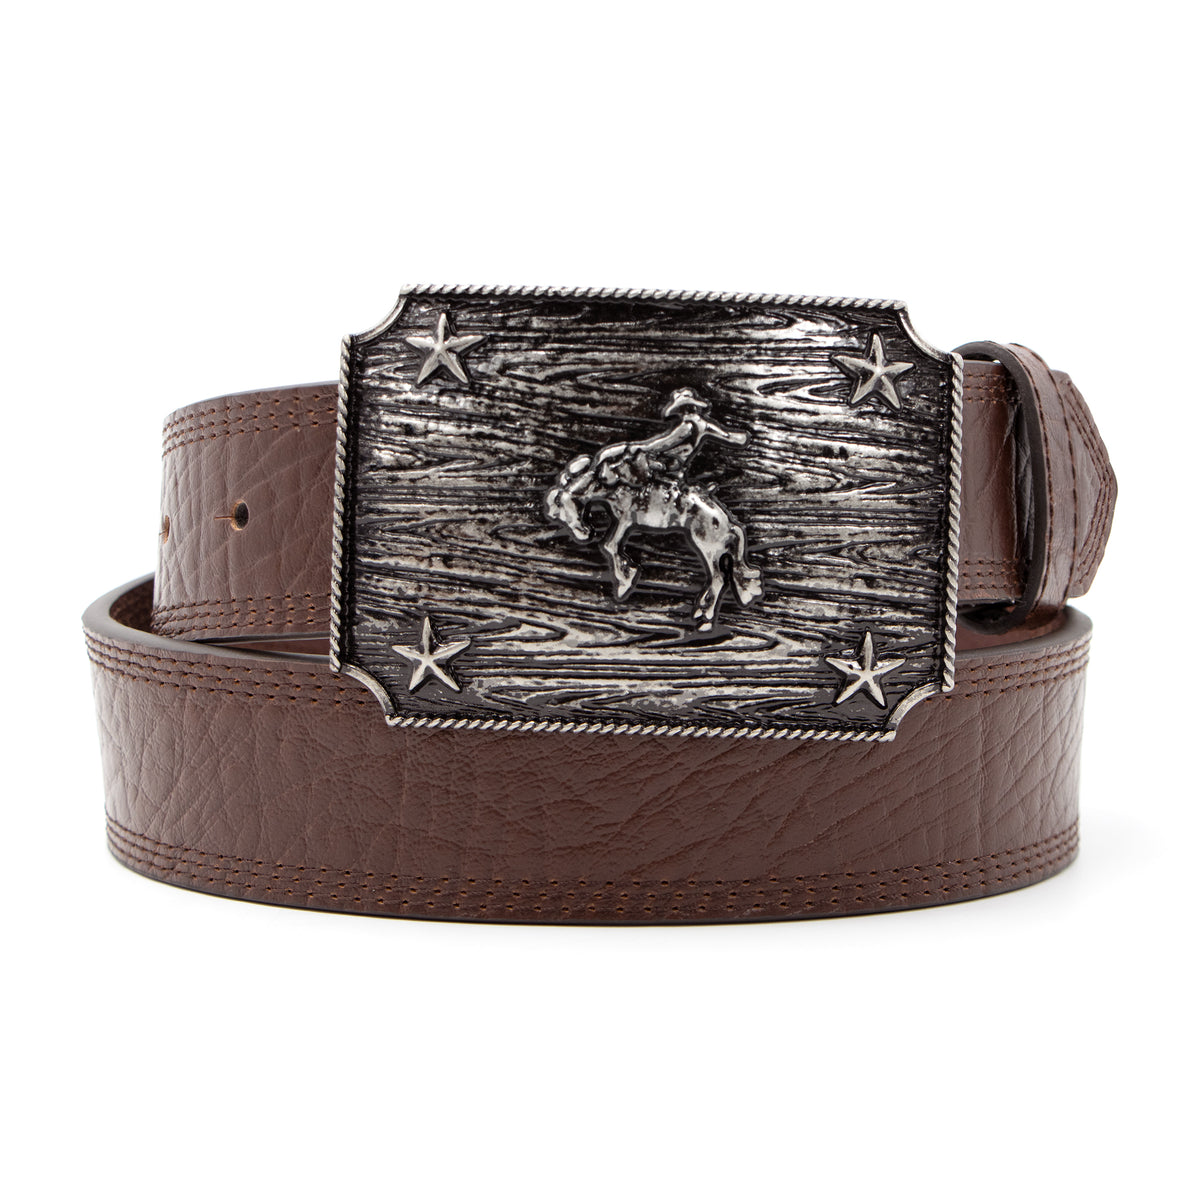 "1 1/2"" Iconic Bronc Rider Plaque Buckle Belt"